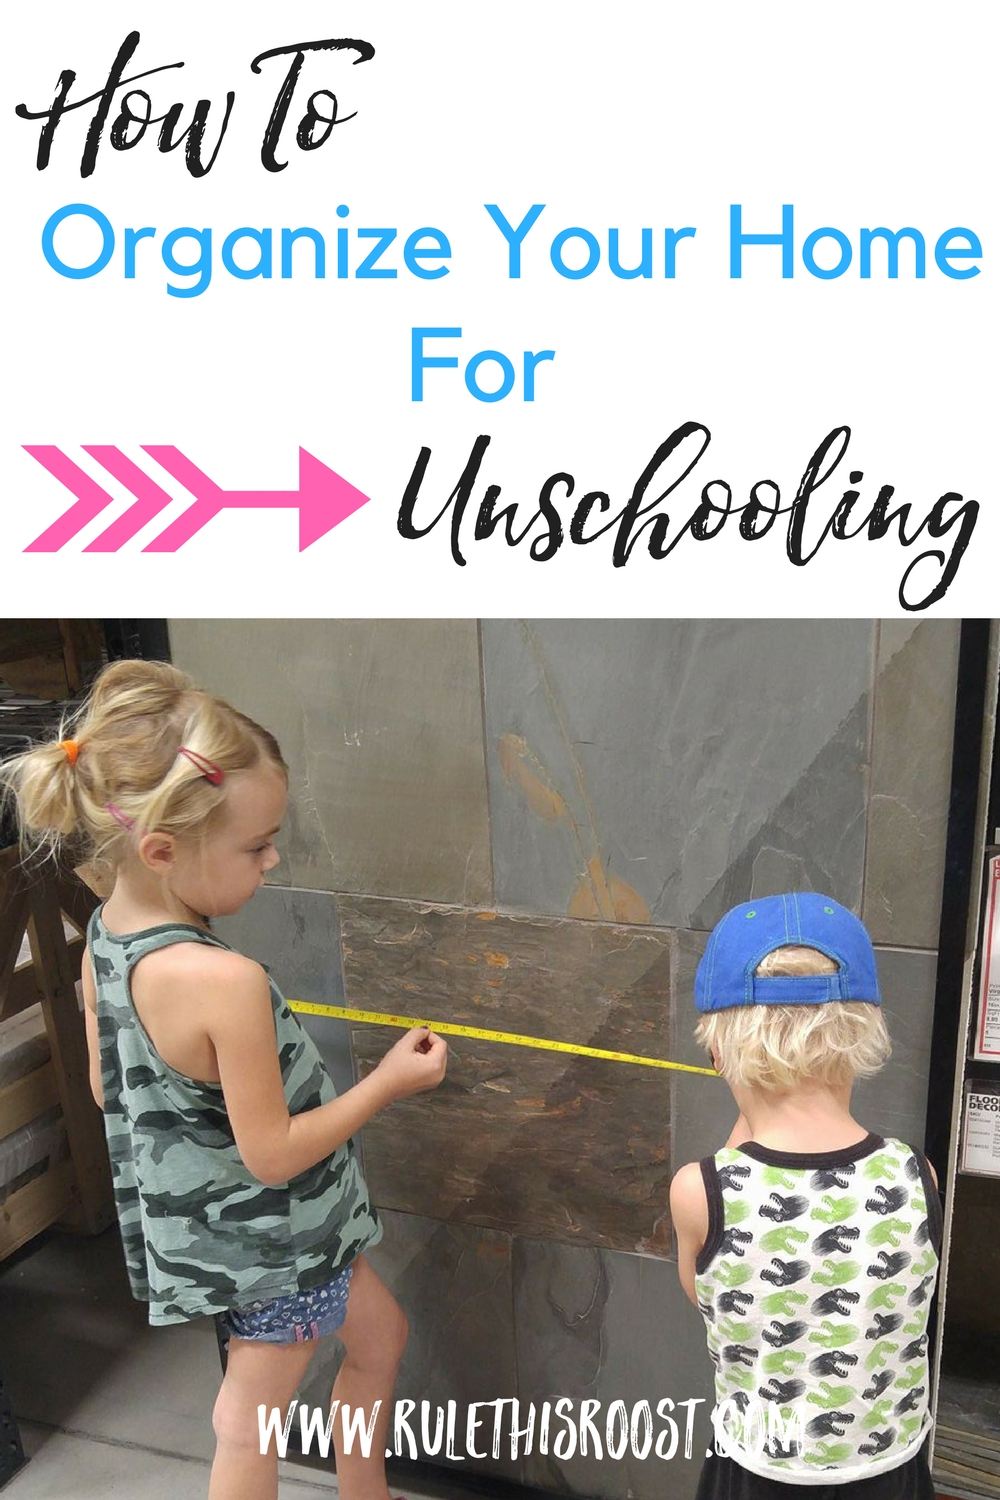 how to organize your home for unschooling, tips, tricks advice